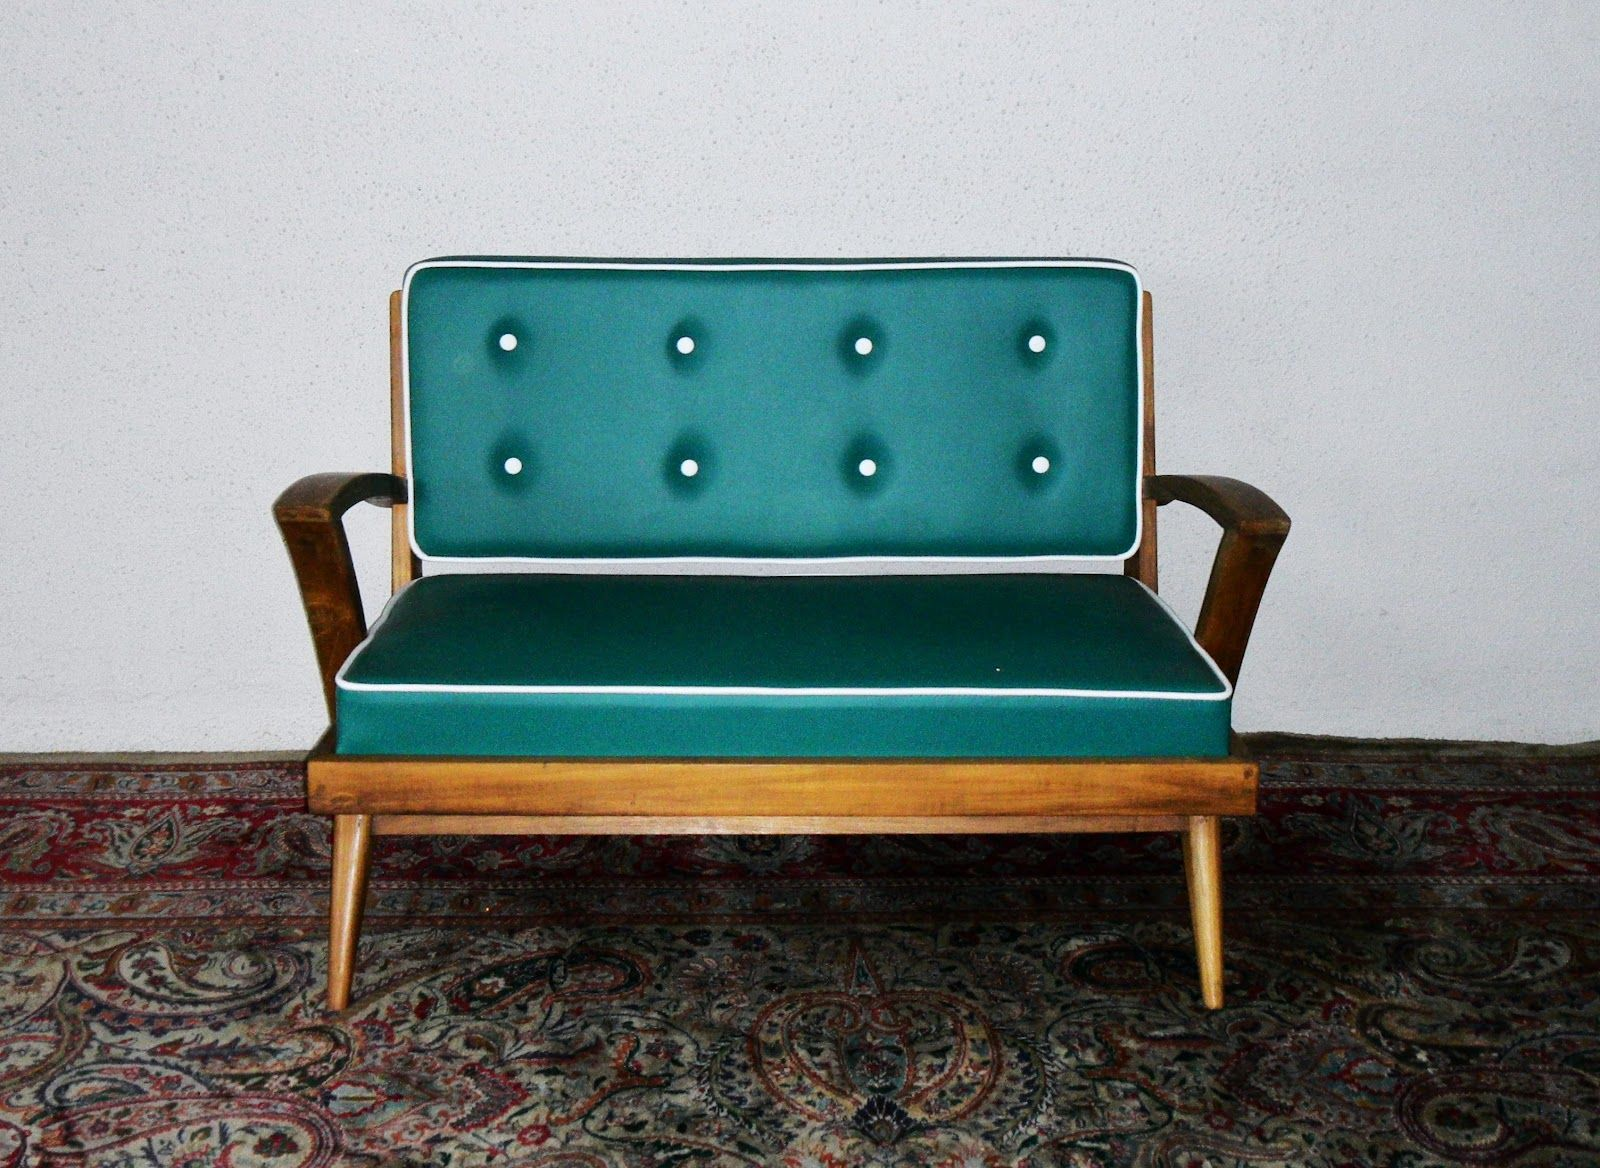 VINTAGE FURNITURE - SECOND CHARM'S LATEST MIDCENTURY COLLECTIONS ...